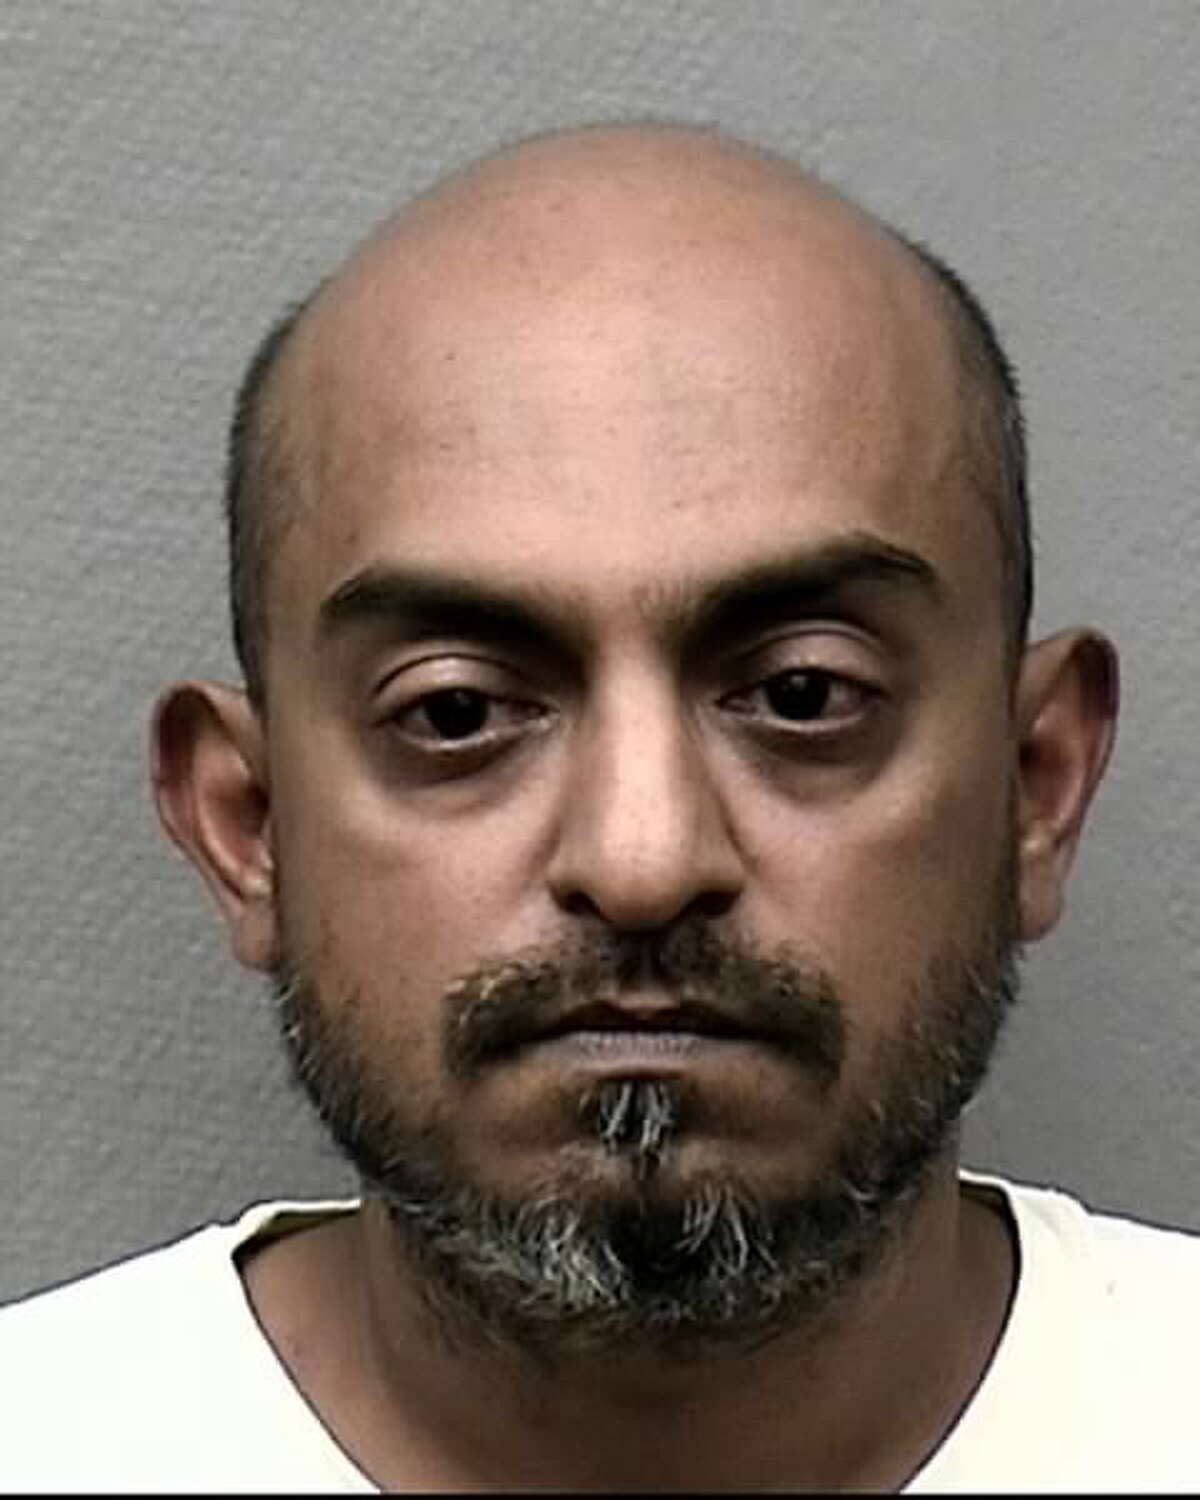 Alok Alva was arrested in August 2016 on a third charge of DWI.